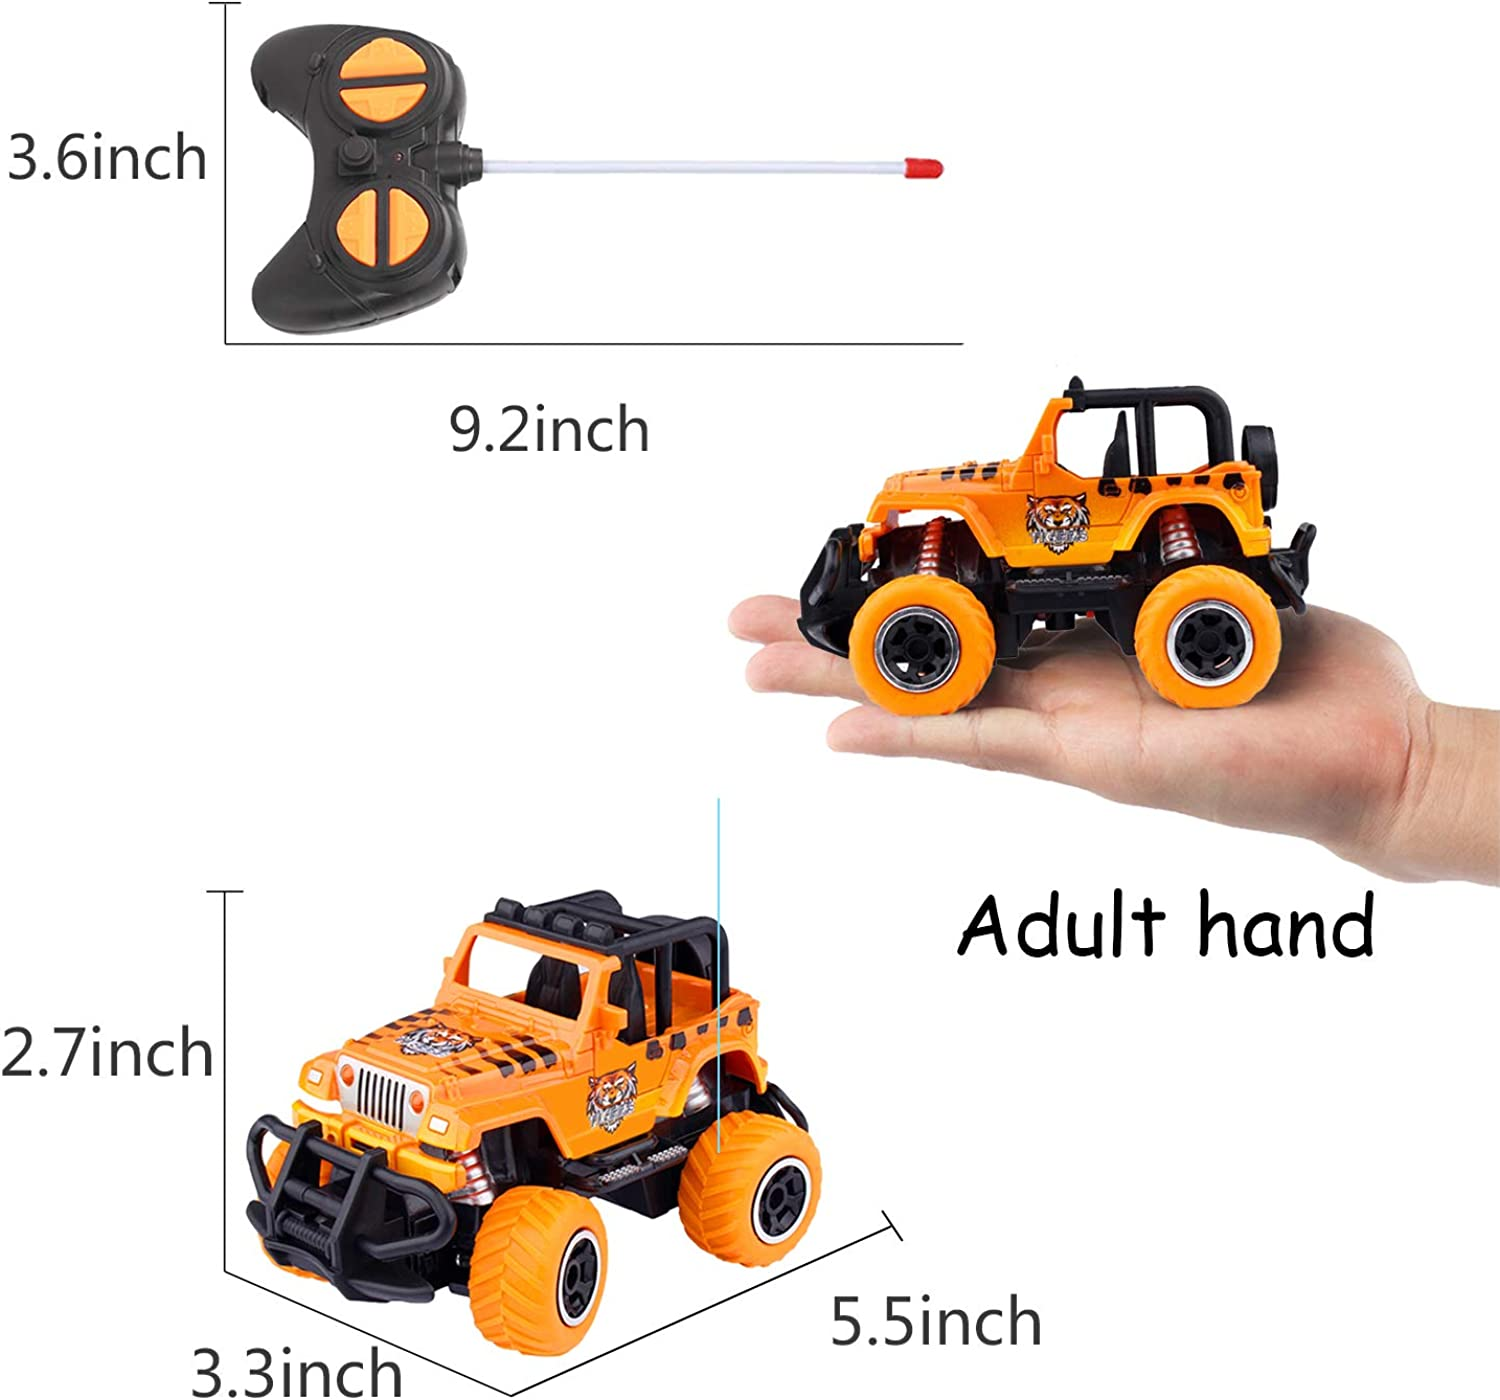 snailrun RC Car for 3-5 Year Old Boy,Electric Exquisite Off-Road Jeep Truck Pickup Remote Control Car Cool Toy for Boys Best Gifts for Kids Hobby Toy 1:43 Scale